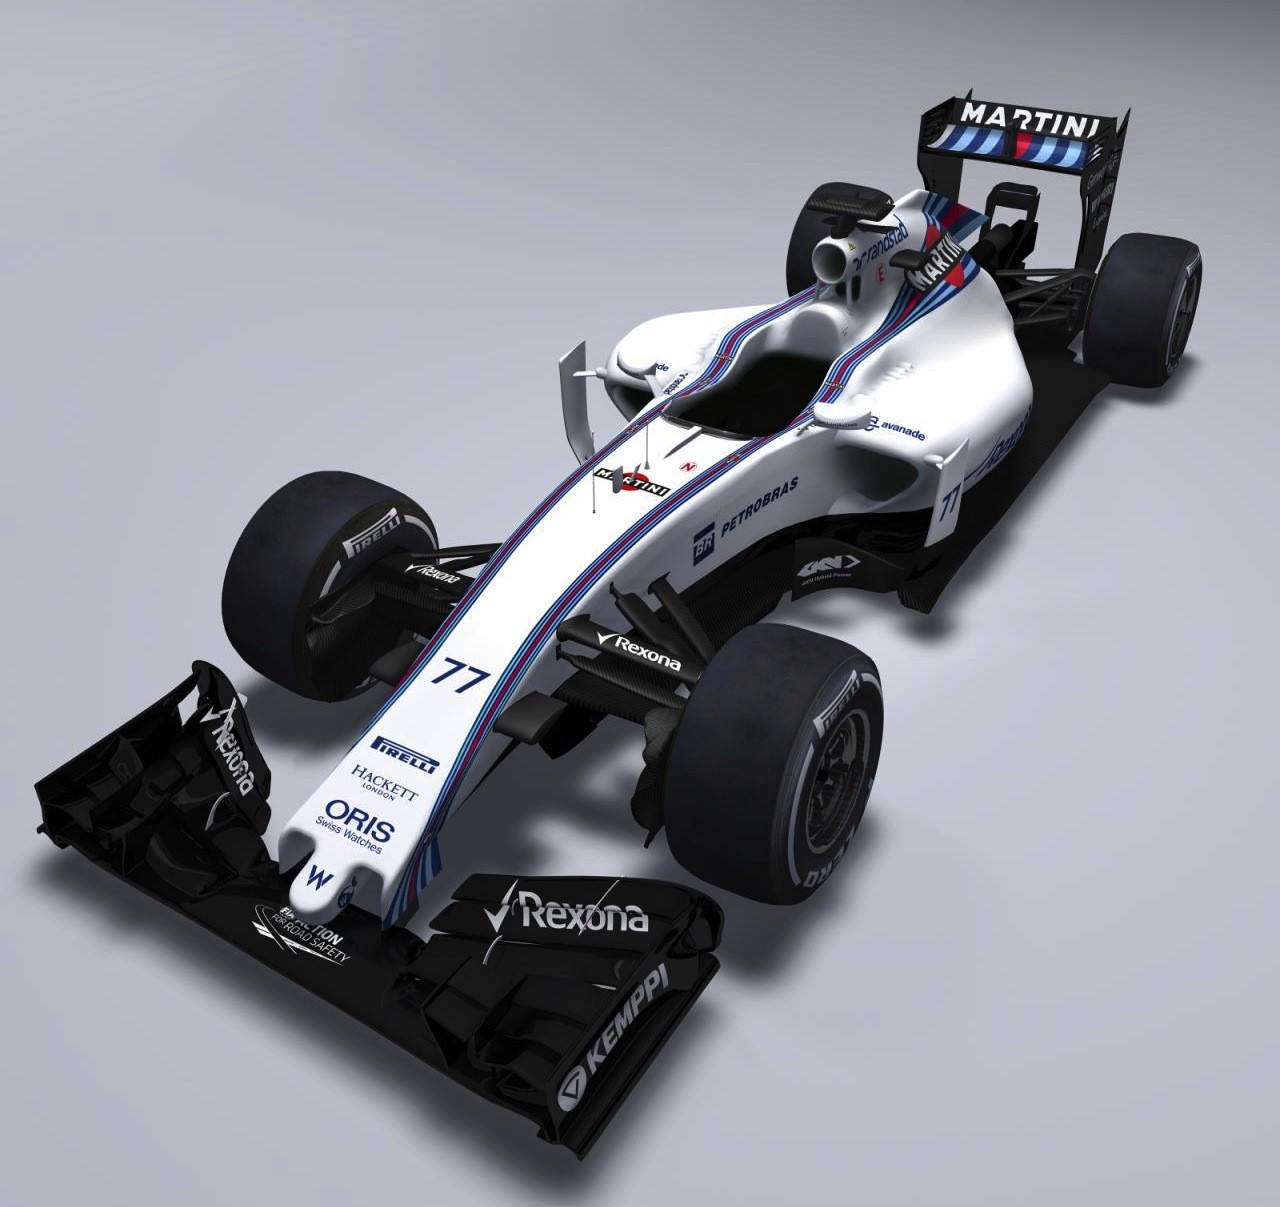 2015 williams formula one car revealed first 2015 f1 car debut performancedrive. Black Bedroom Furniture Sets. Home Design Ideas